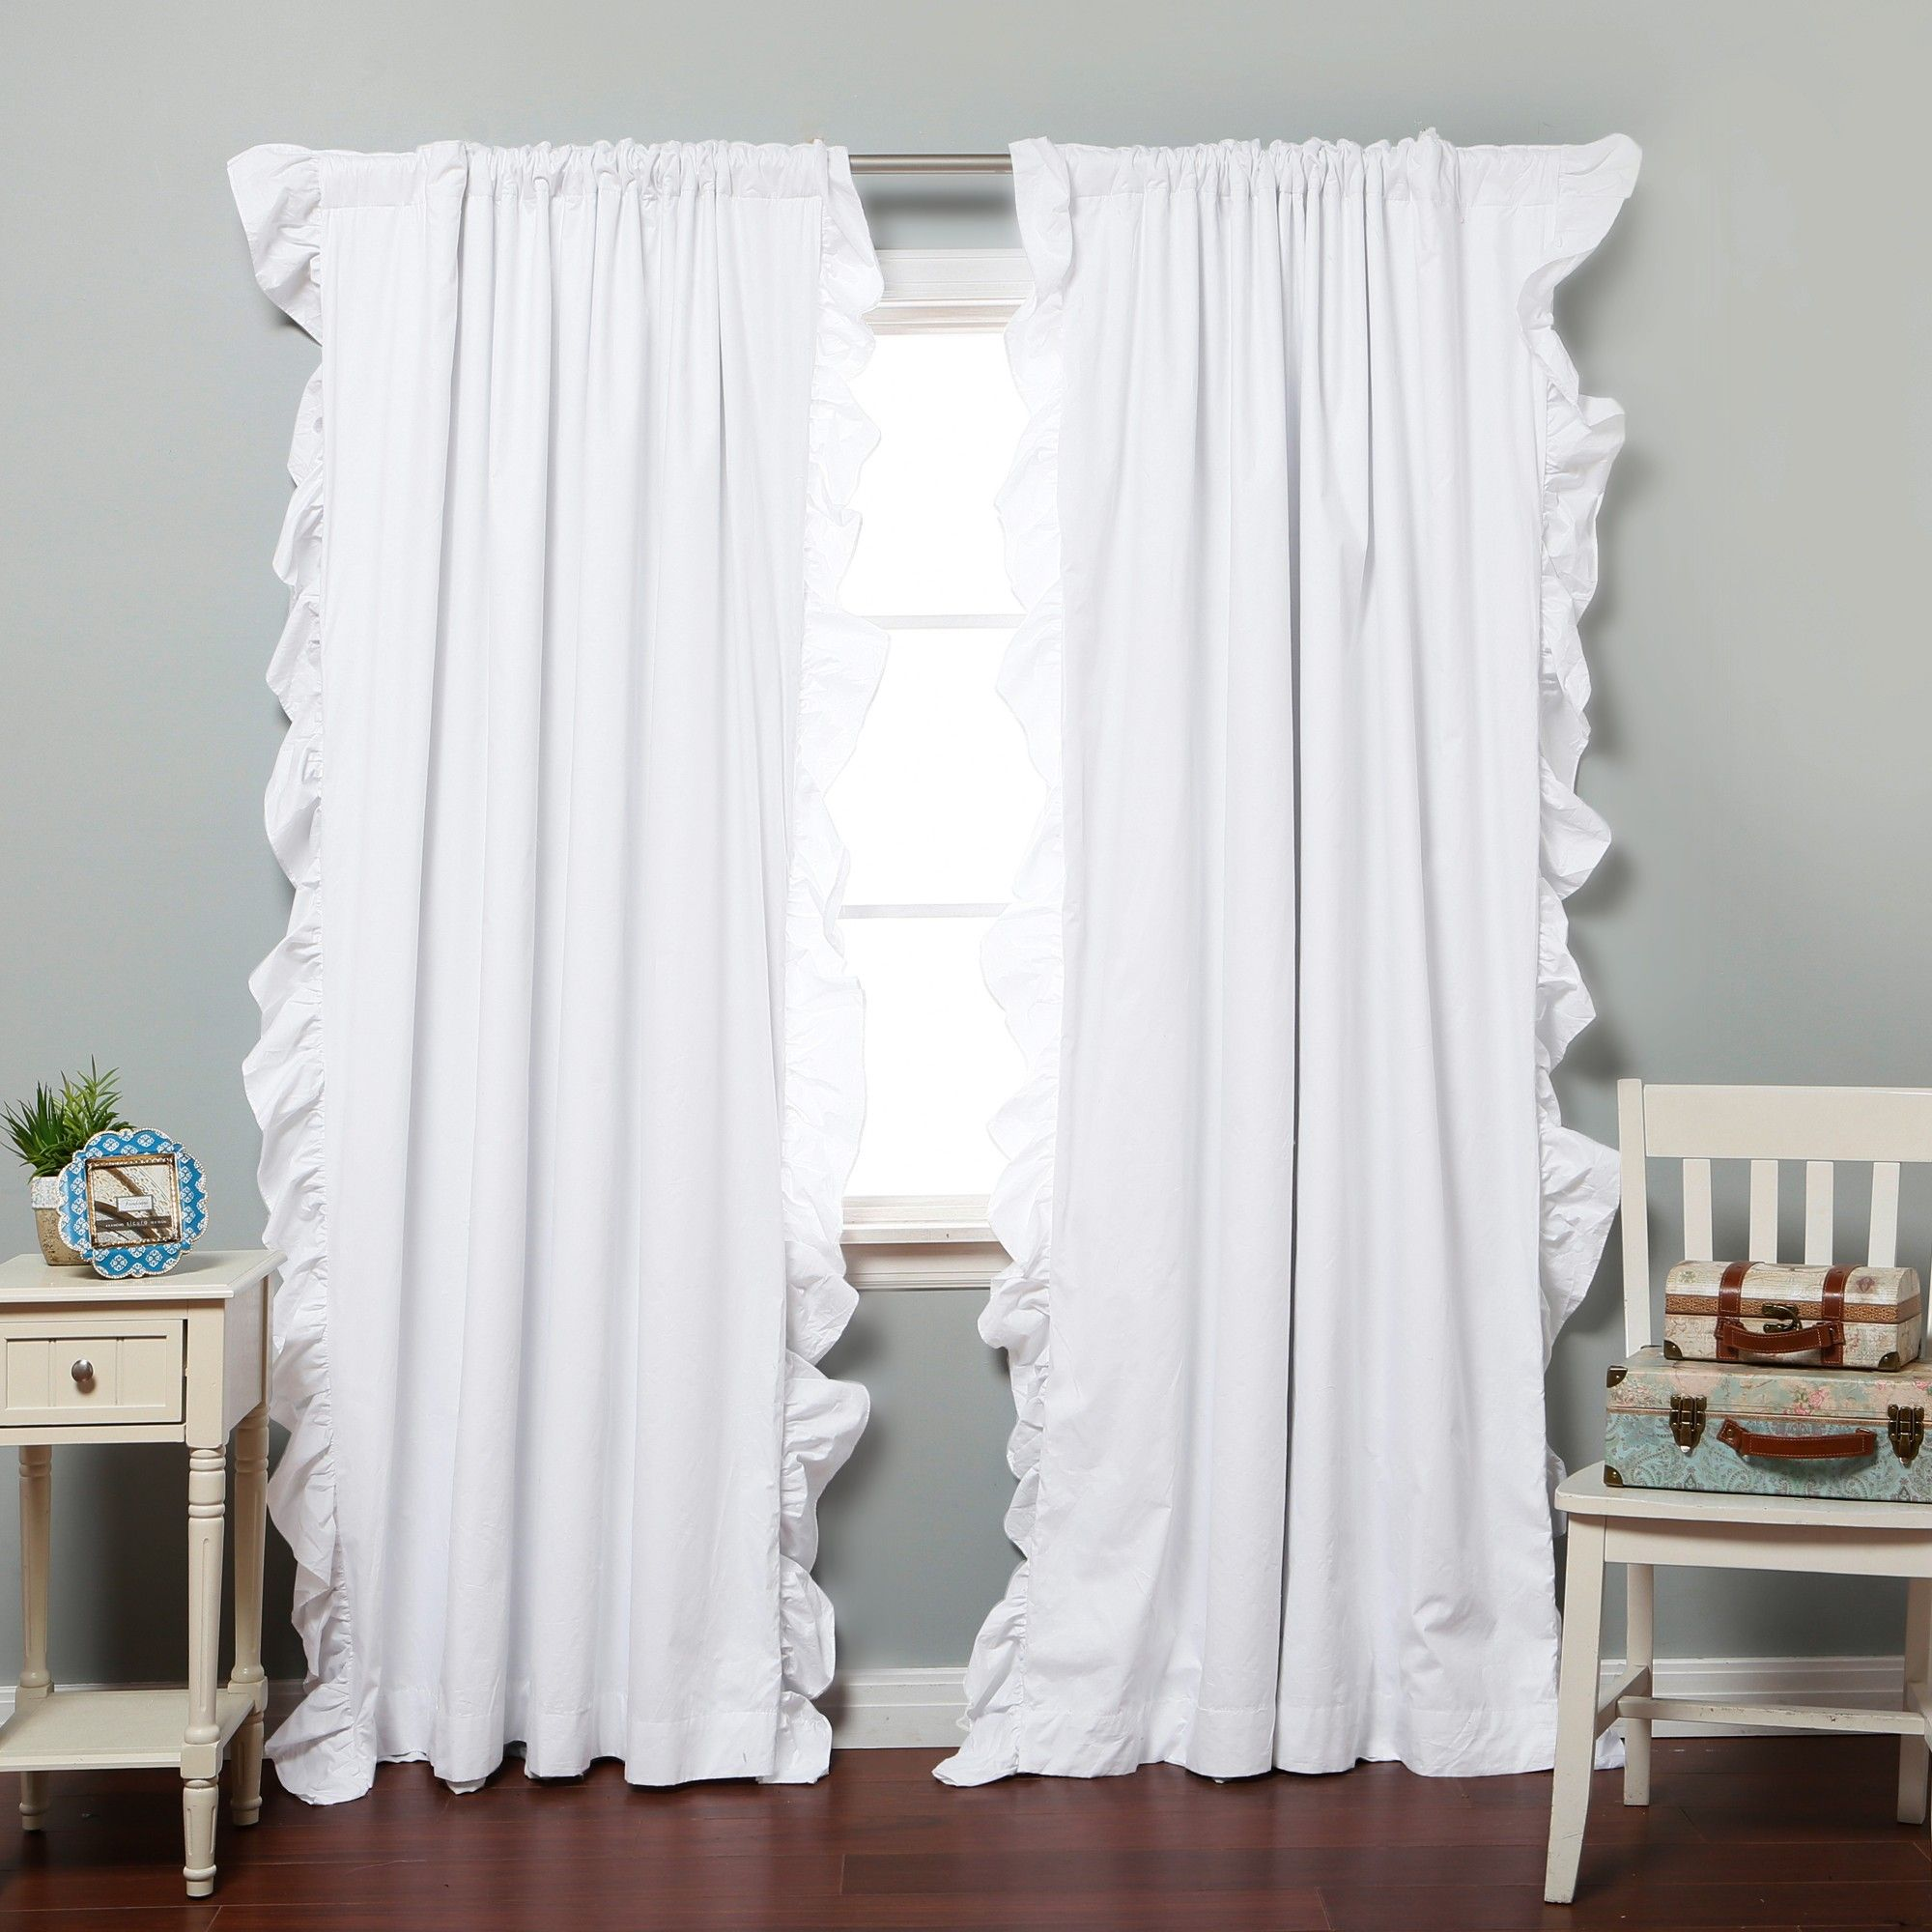 Wonderful Blackout Curtains Target For Home Decoration Ideas White Thermal Blackout Curtains